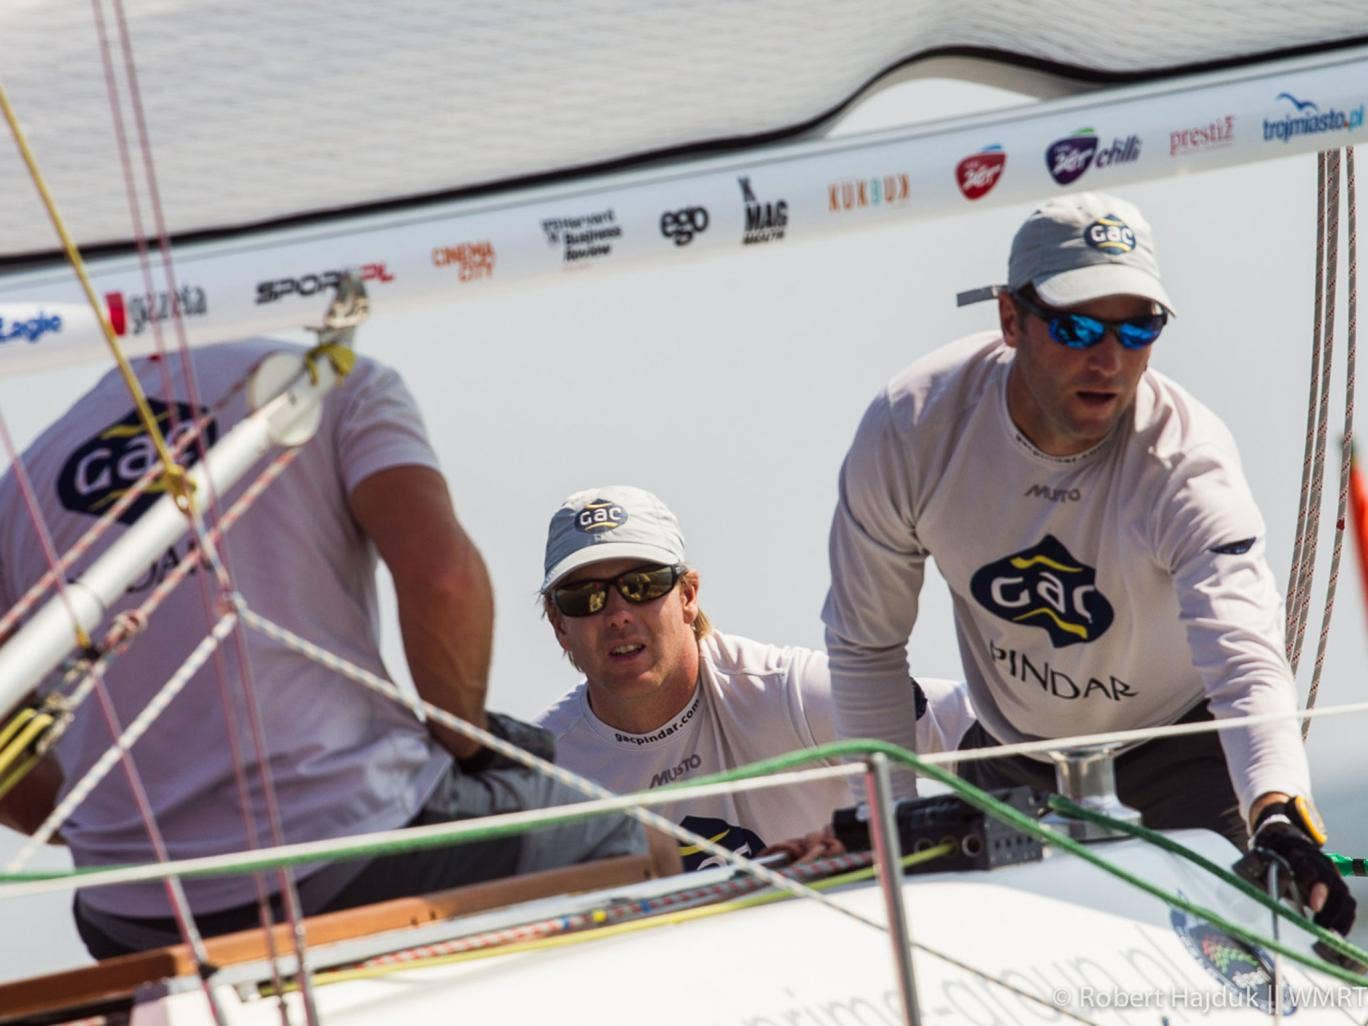 Ian Williams (centre) on his way to a GAC Pindar victory on the Alpari World Match Racing Tour in Poland